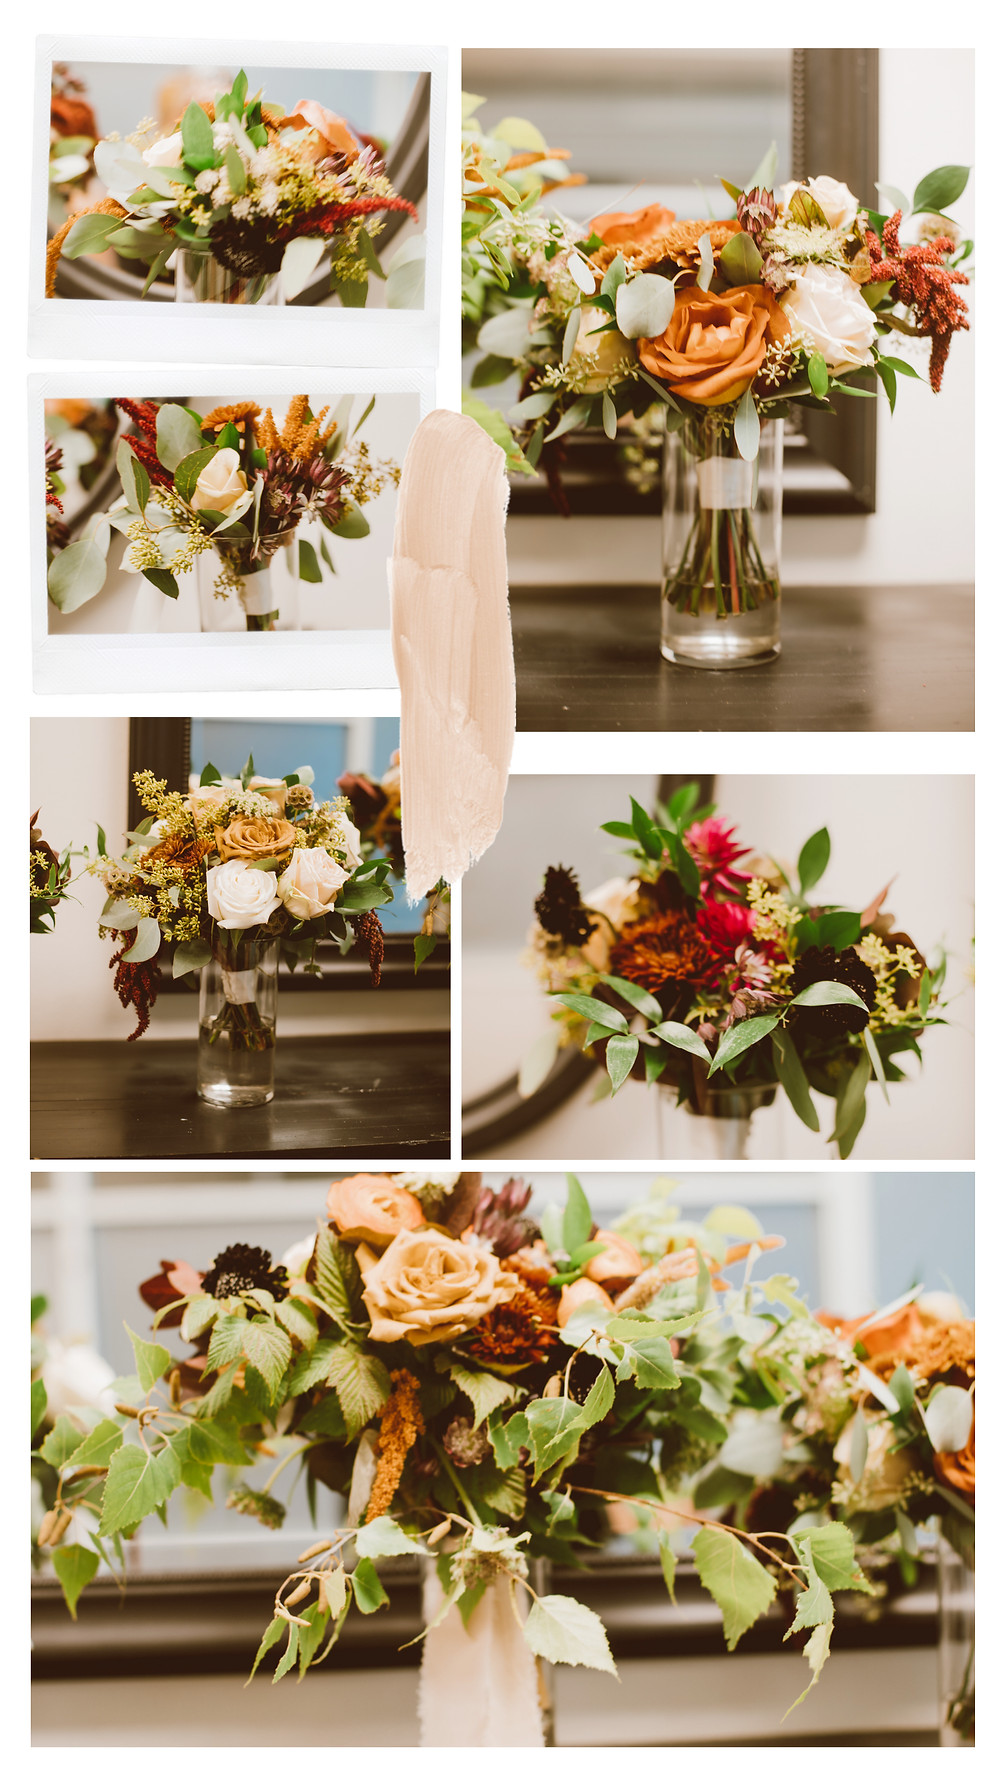 Wedding flowers by Branching Out and Company, Appleton, WI.